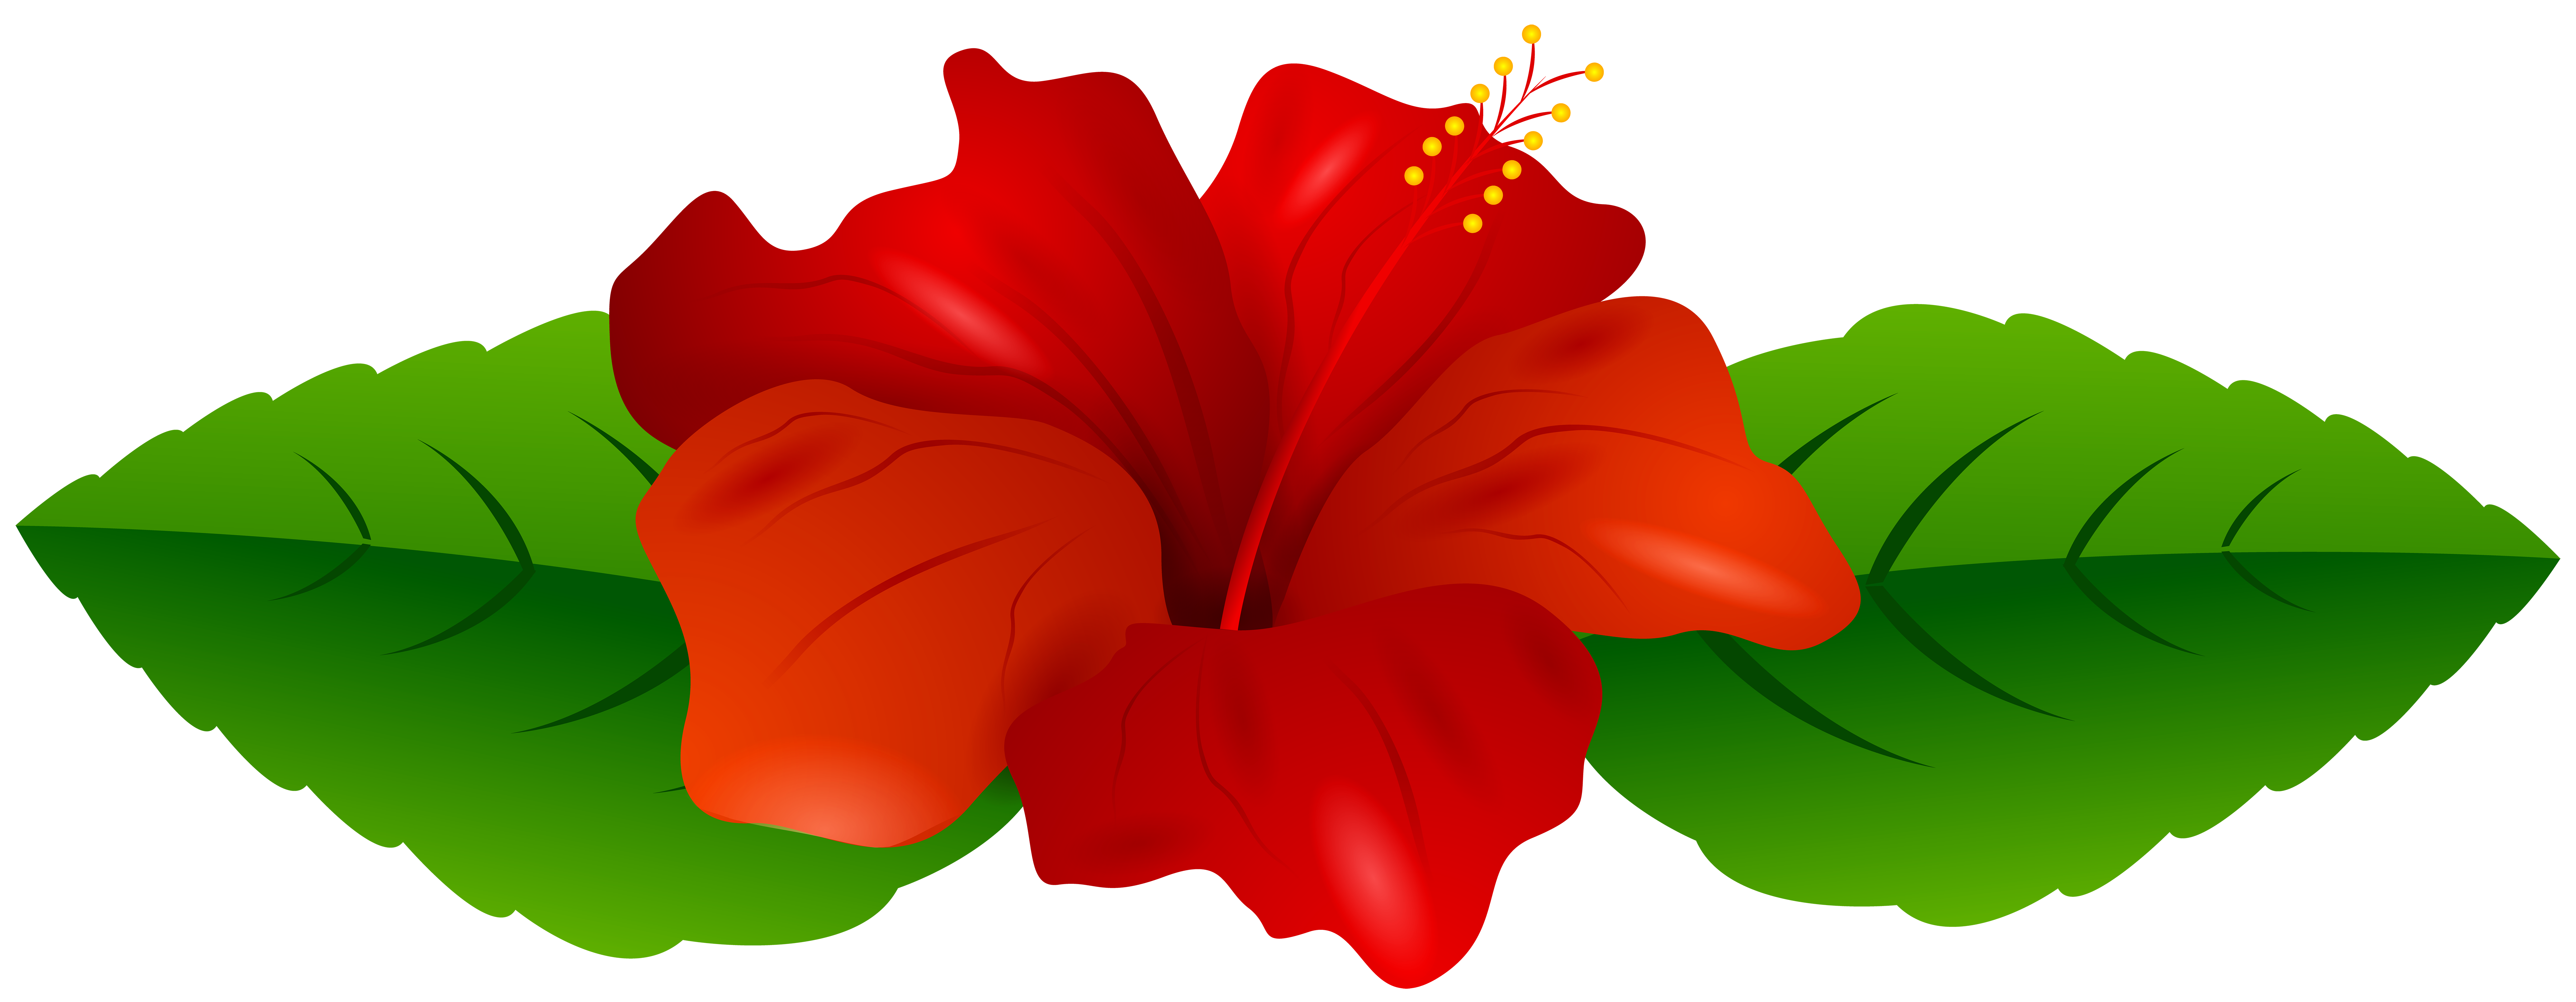 Hibiscus clipart flower boarder.  collection of red